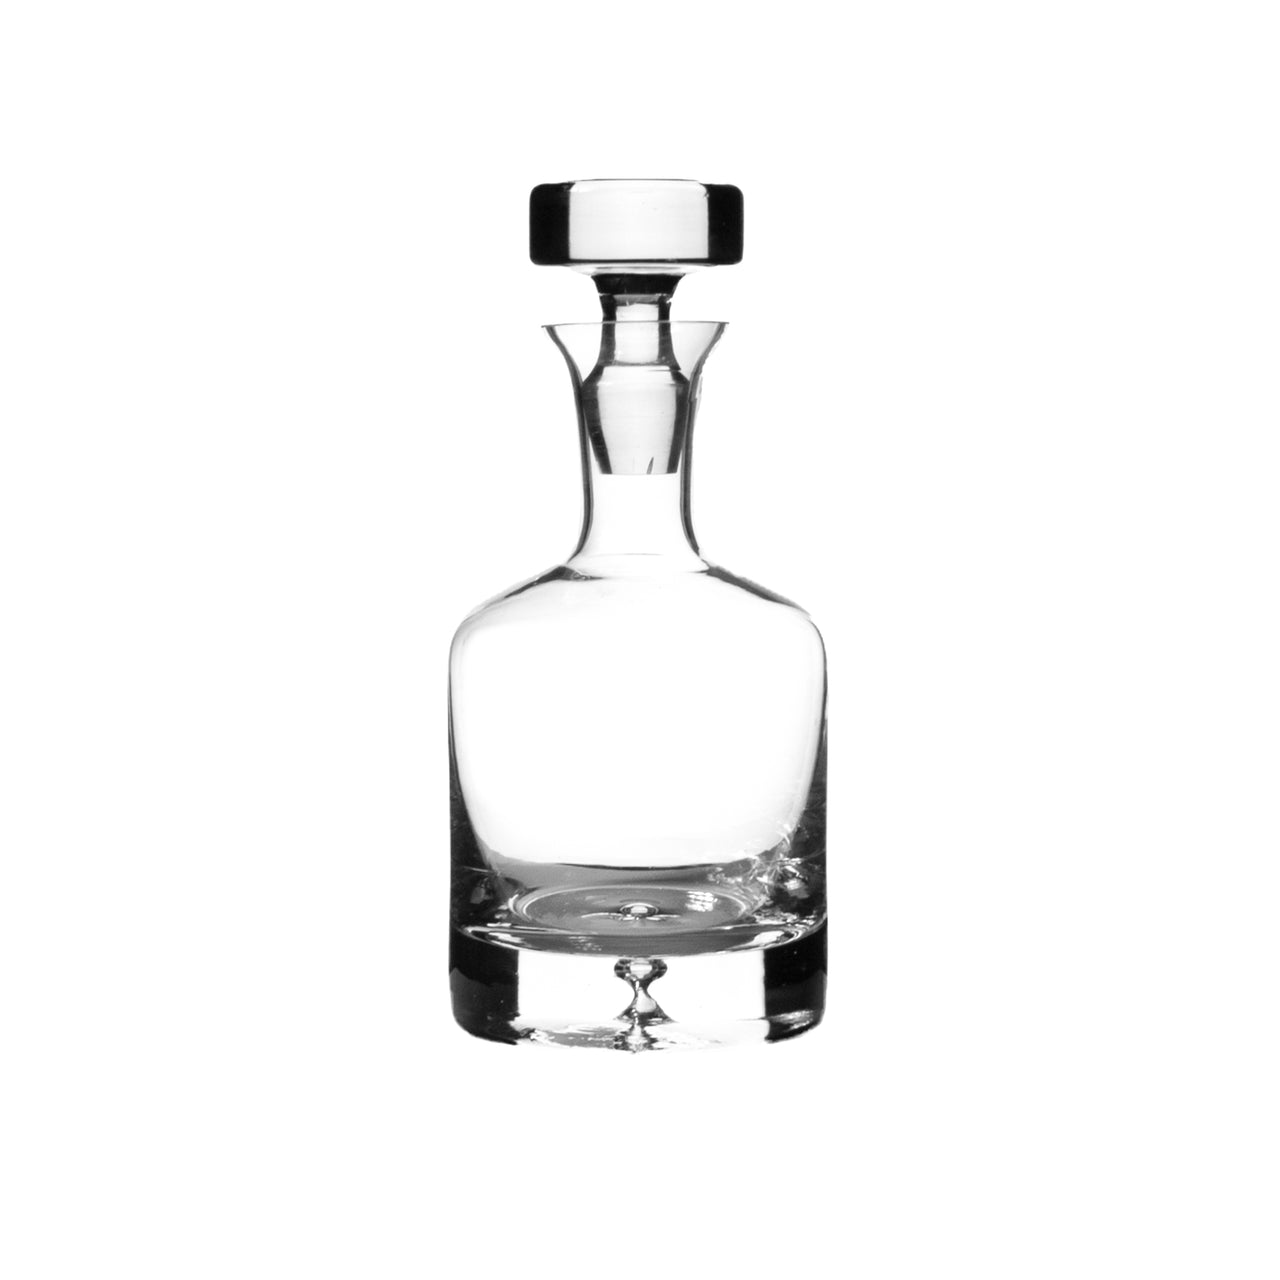 Hatch Decanter 30 oz.